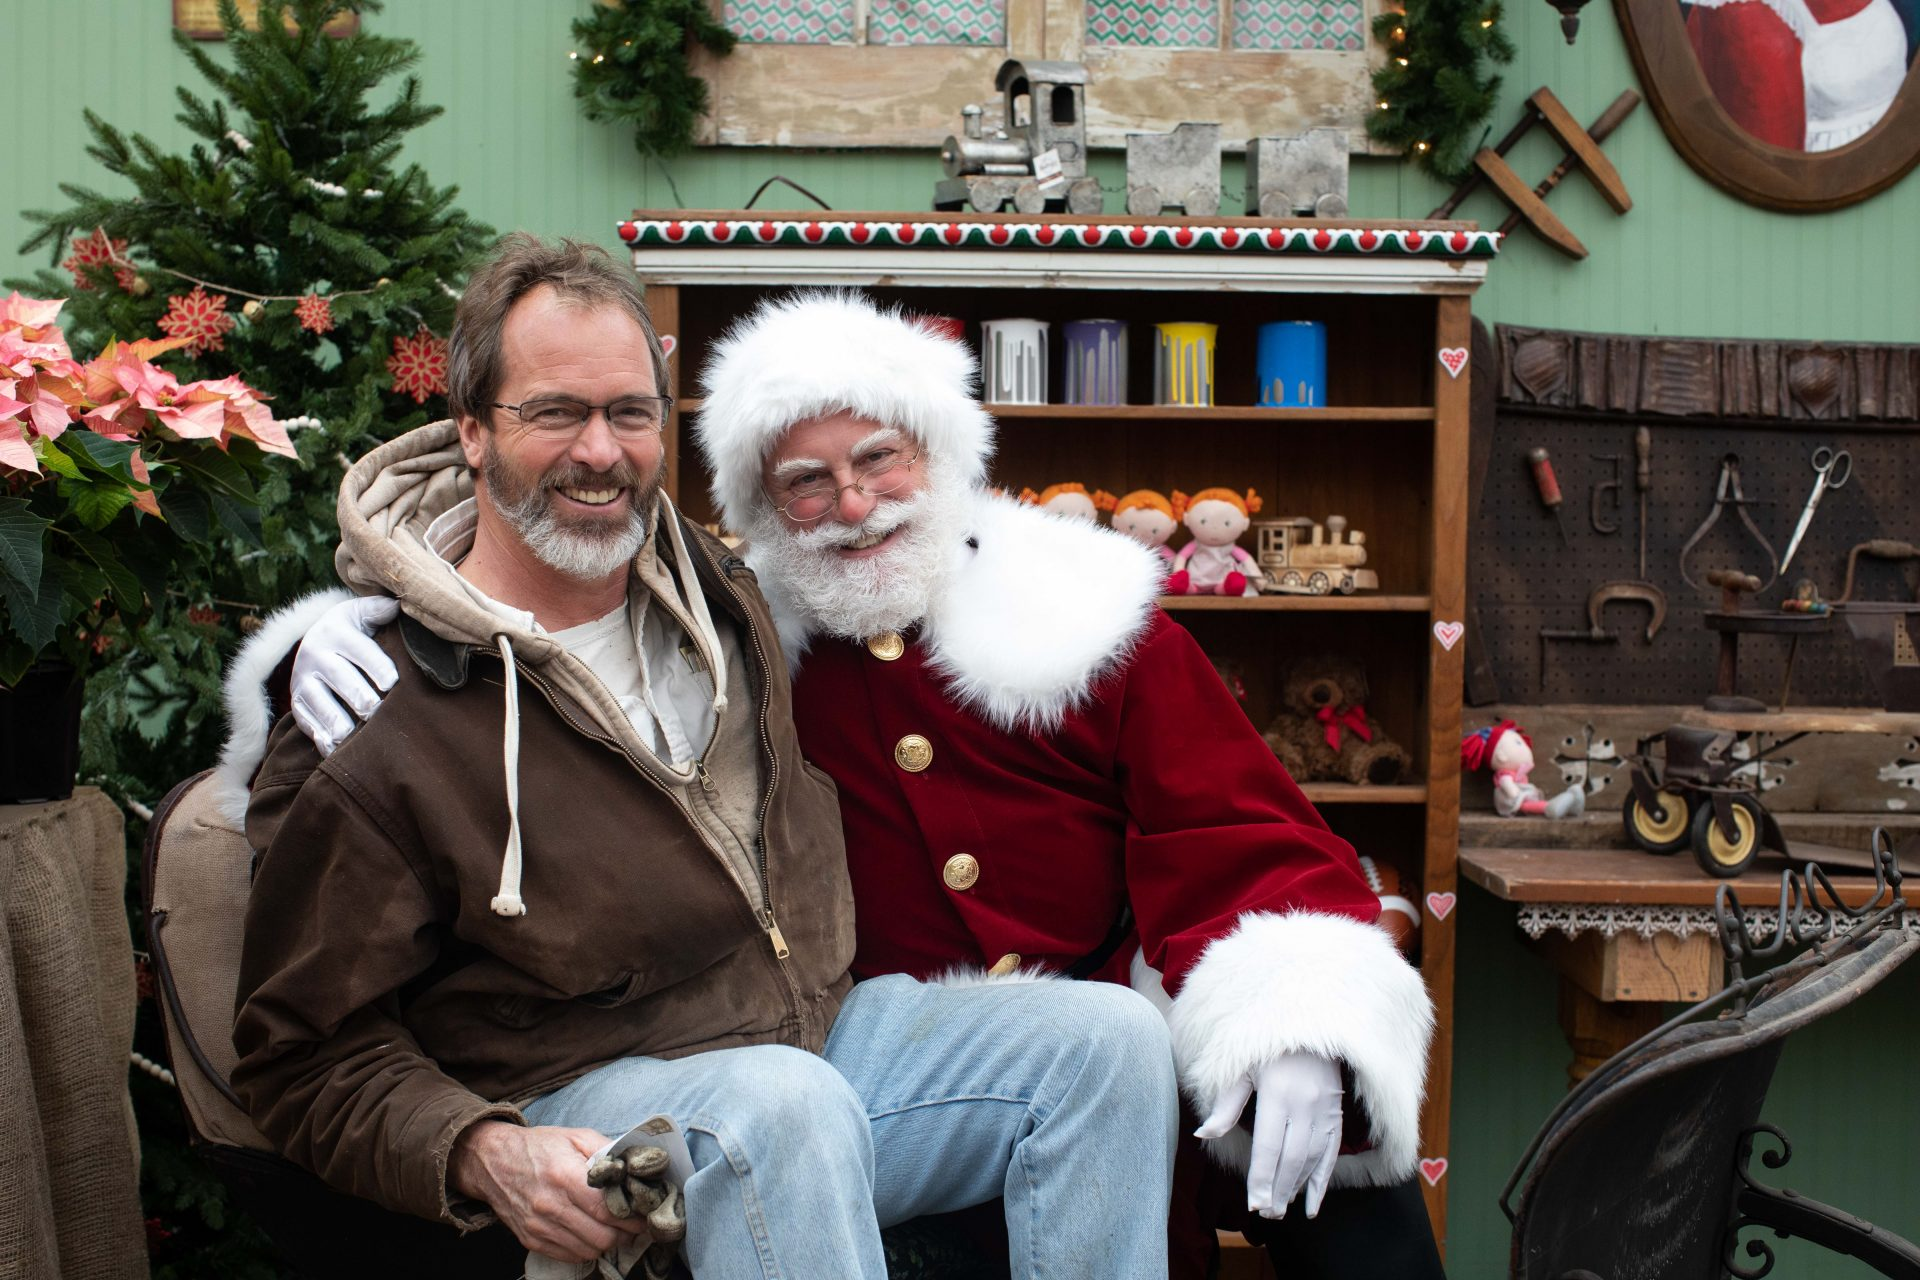 Norm Schultz, Farm Manager of Linvilla Orchards in Media, Pennsylvania poses with Santa Claus, played by Steve Nieman of Springfield, PA. Linvilla Orchards has thrived by diversifying their operations and offering a complete Christmas experience to visitors.